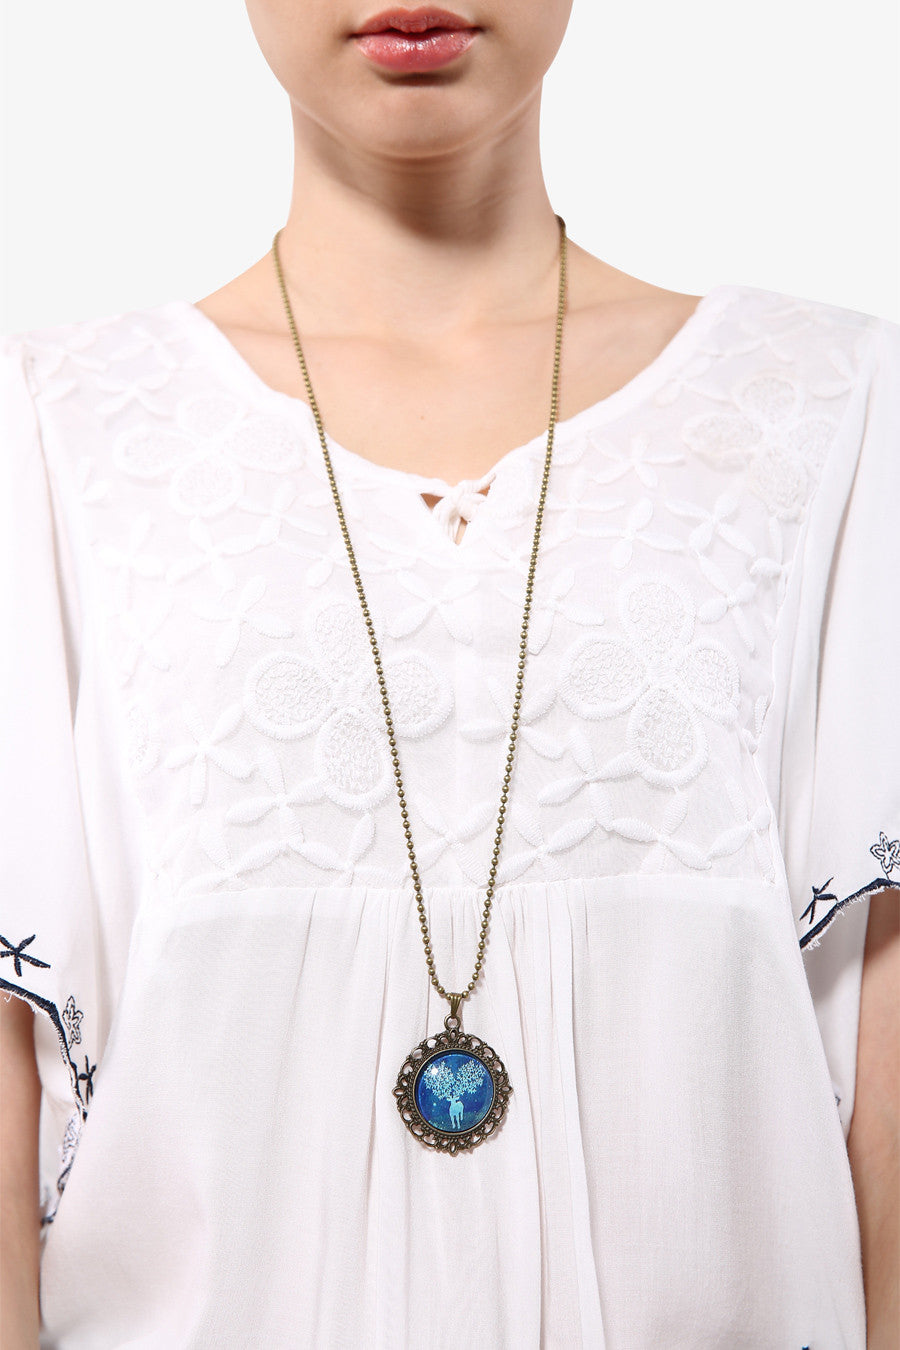 Retro Rosette Elk Necklace